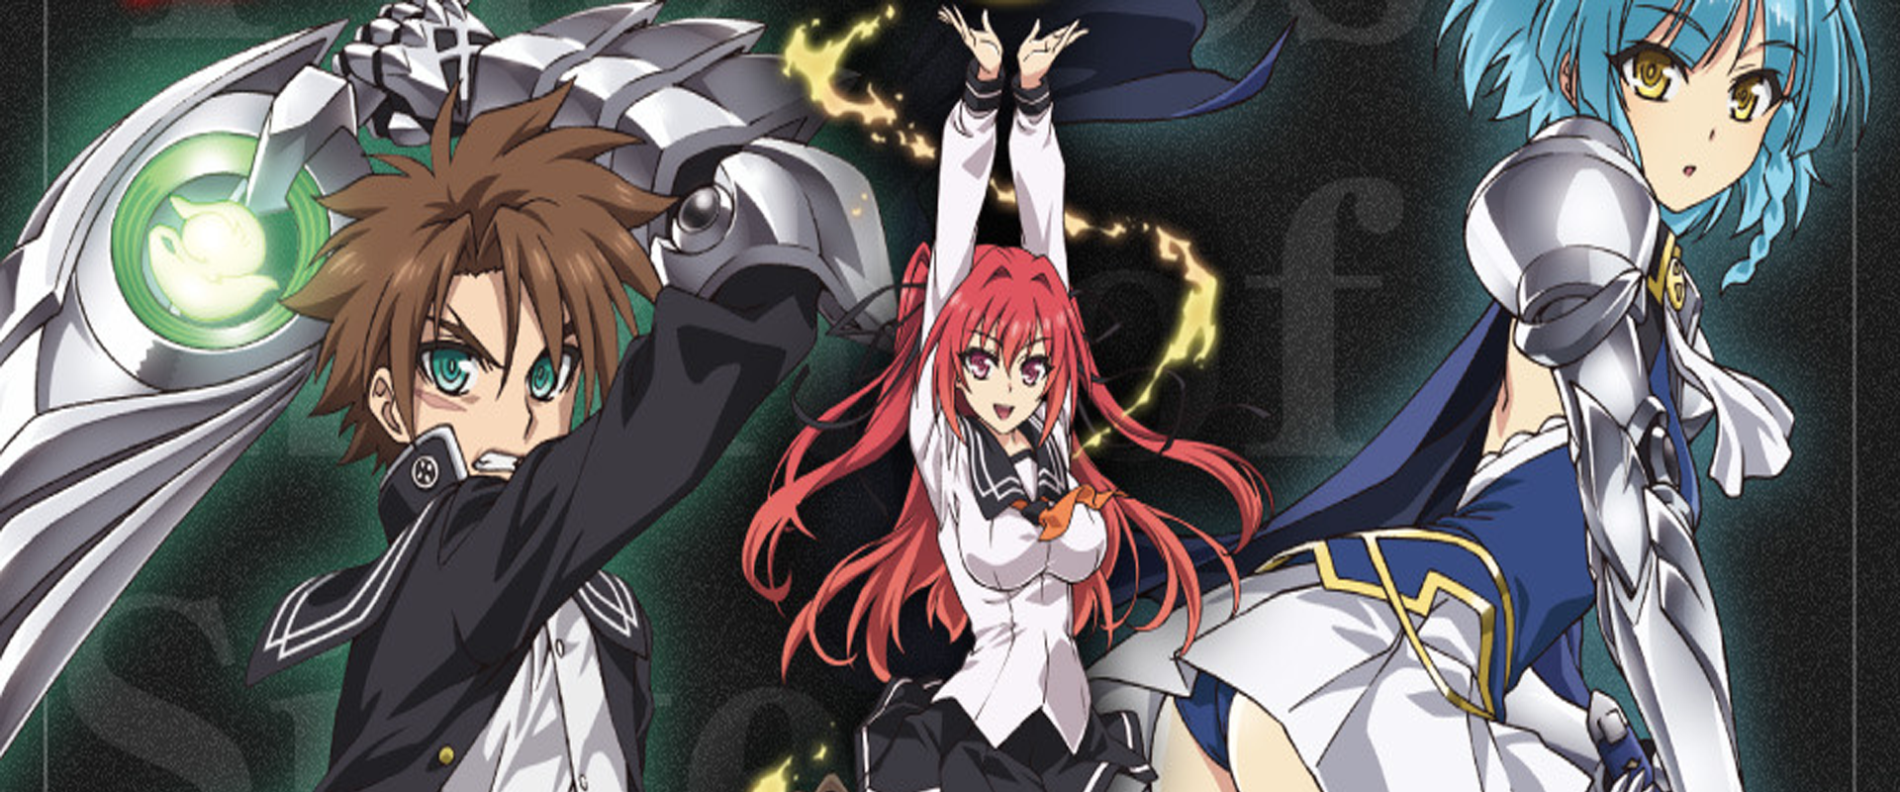 Shinmai Maou no Testament Ep. 1: Another demon lord